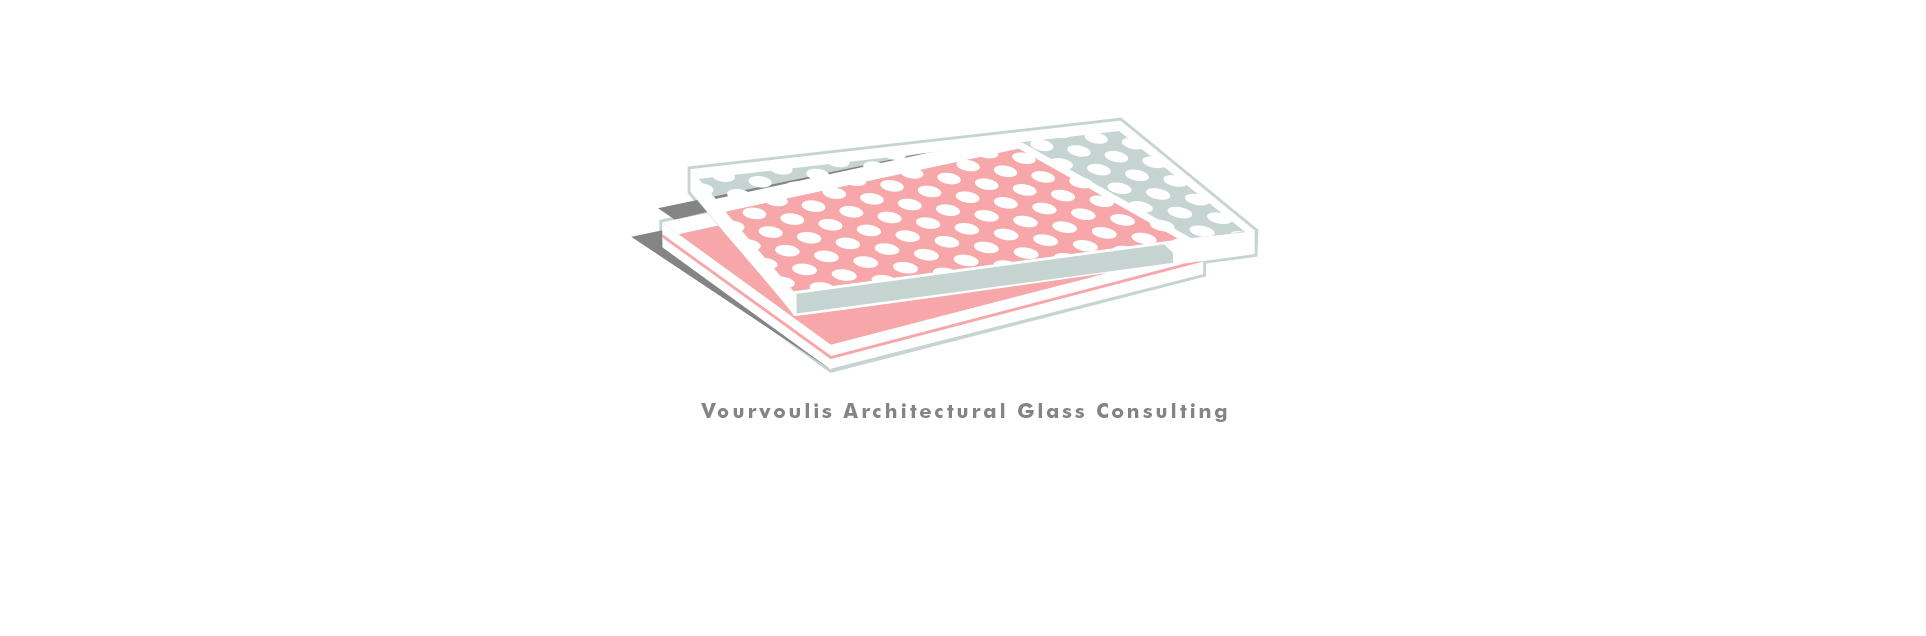 Vourvoulis Architectural Glass Consulting